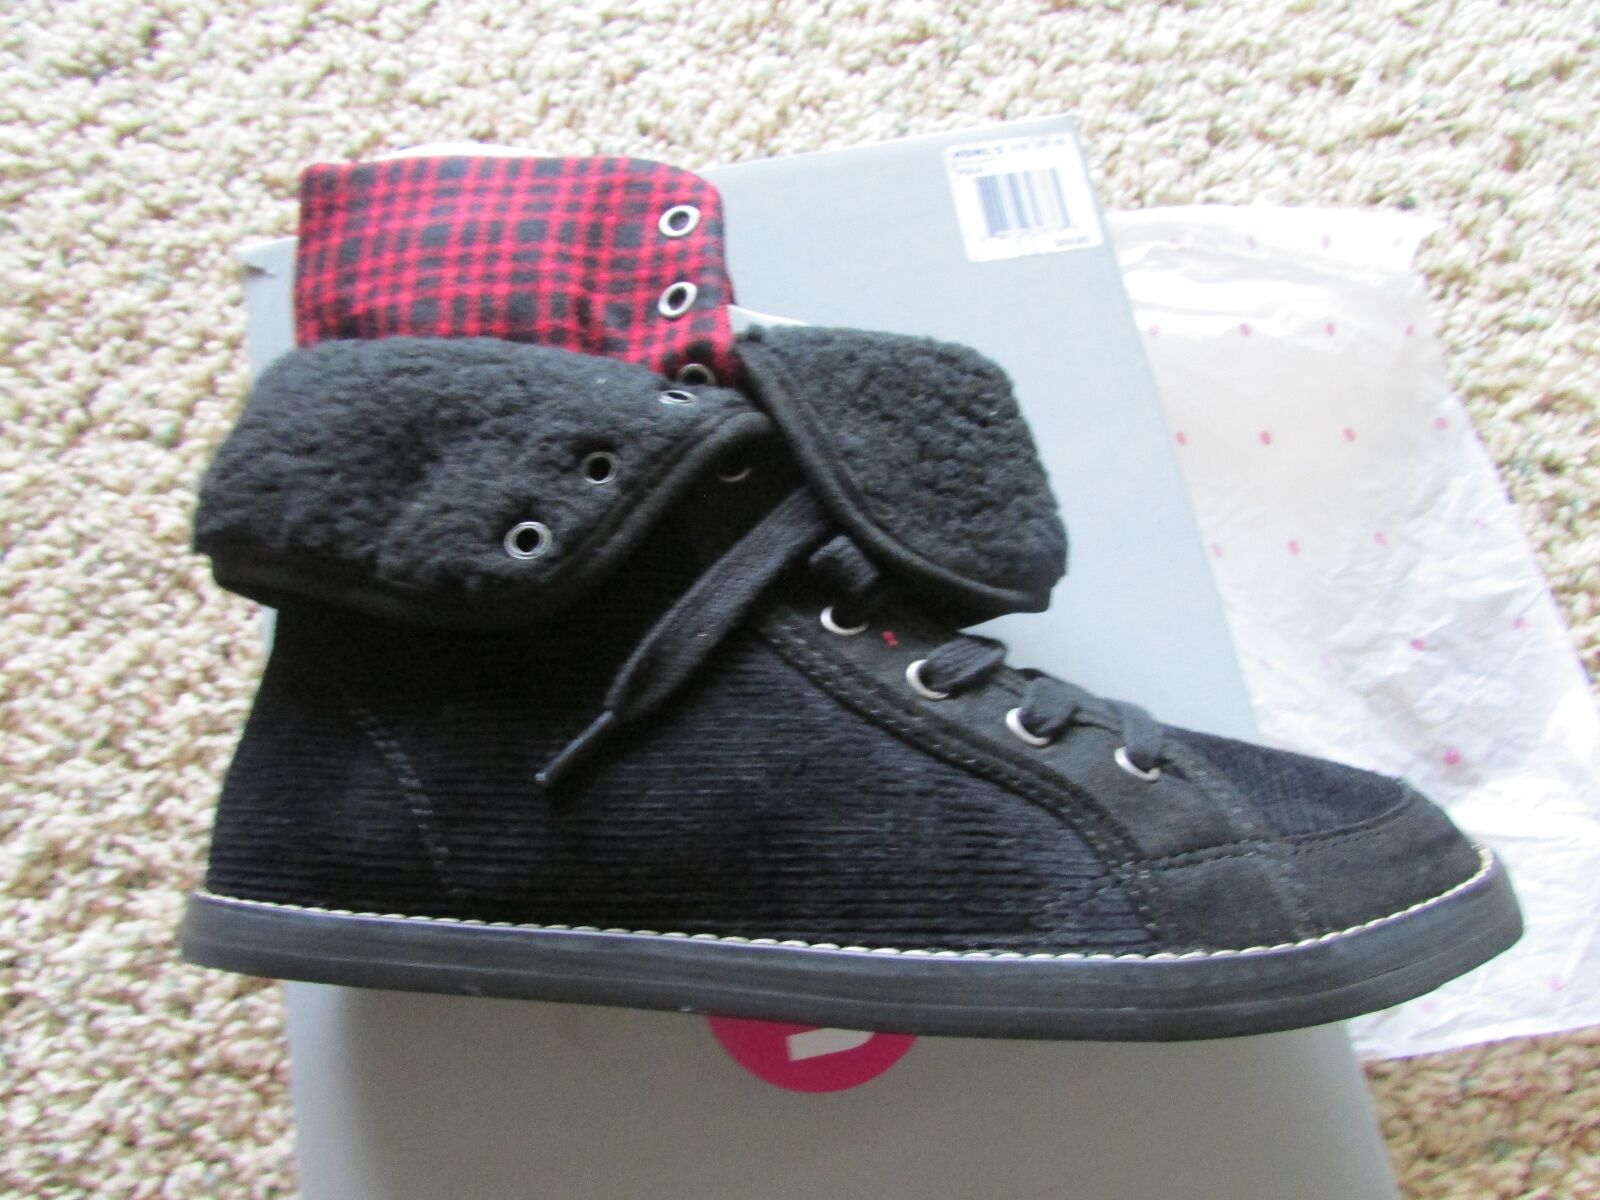 NEW ROCKET DOG UNLEASHED SHOOTIES BOOTIES BOOTS SHOES SHOE BOOTS WOMENS 6 BLACK